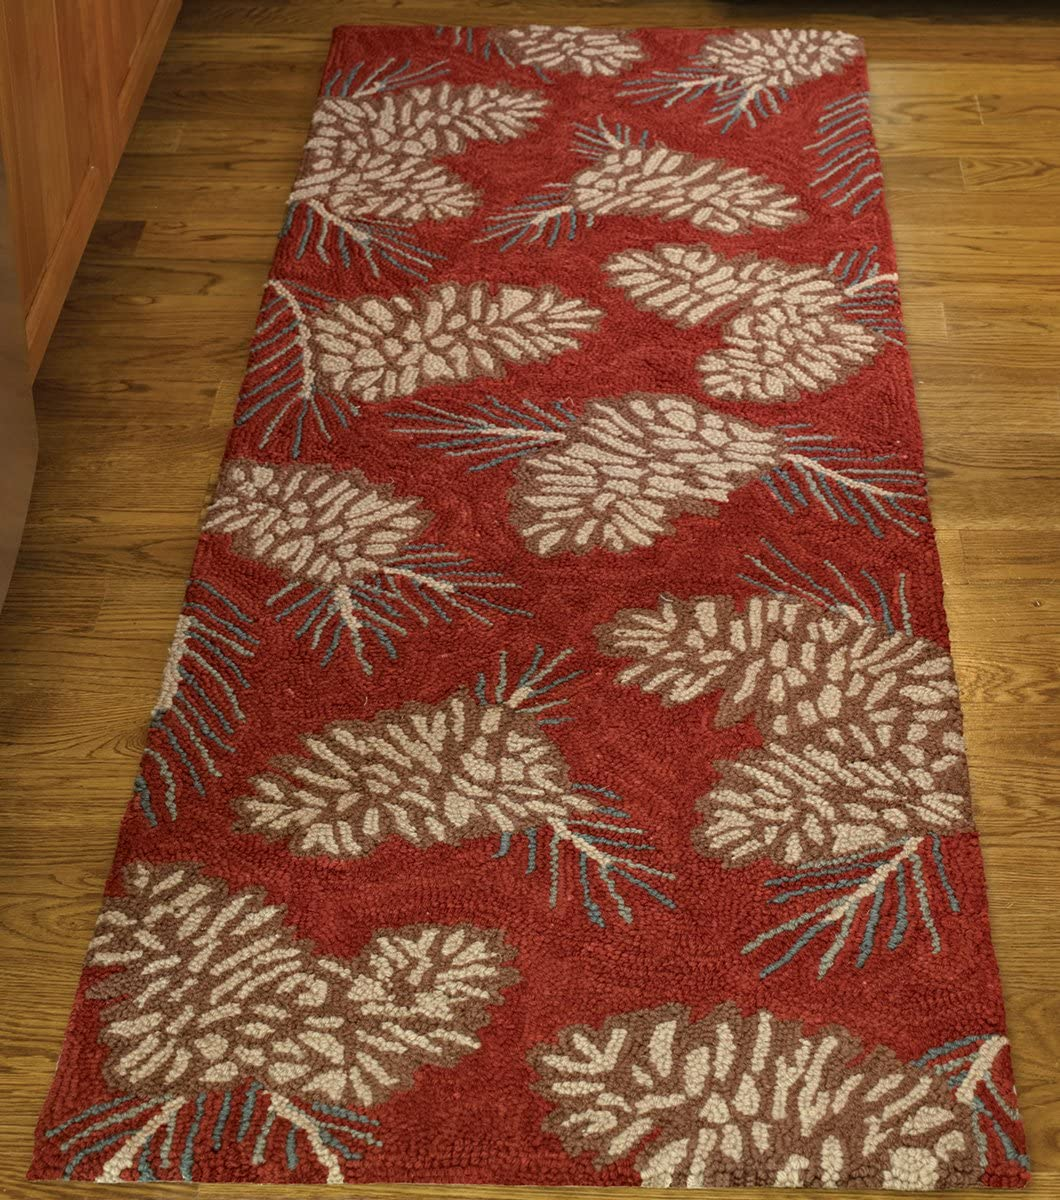 Park Designs Pinecone Hooked Rug Runner 24X72 72 24 Super beauty product restock Ranking TOP13 quality top x